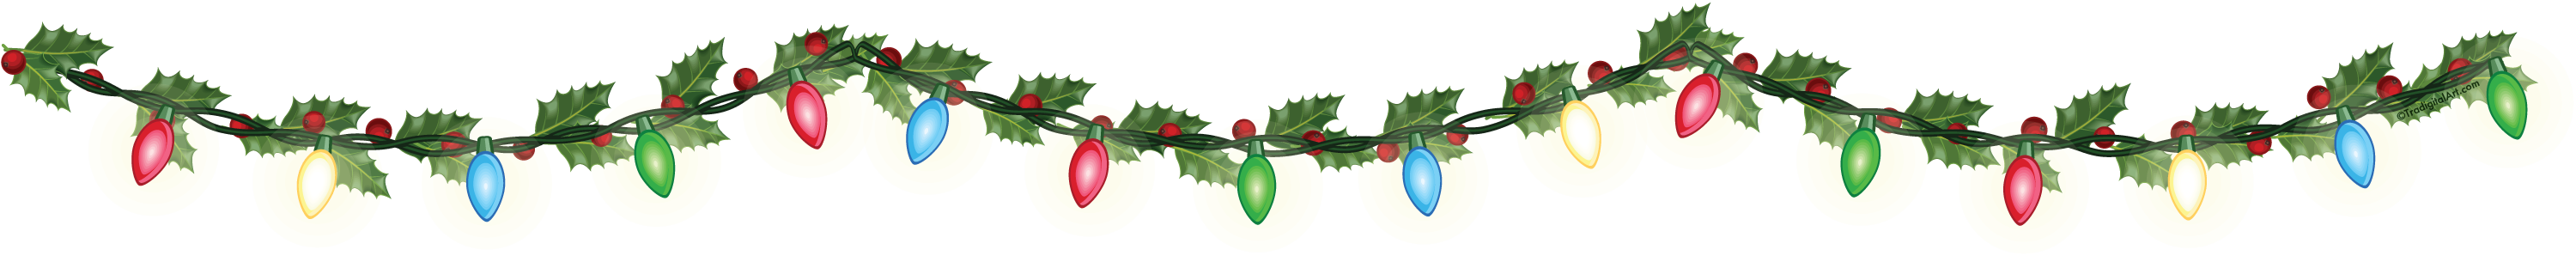 Christmas-Lights-Free-Download-PNG